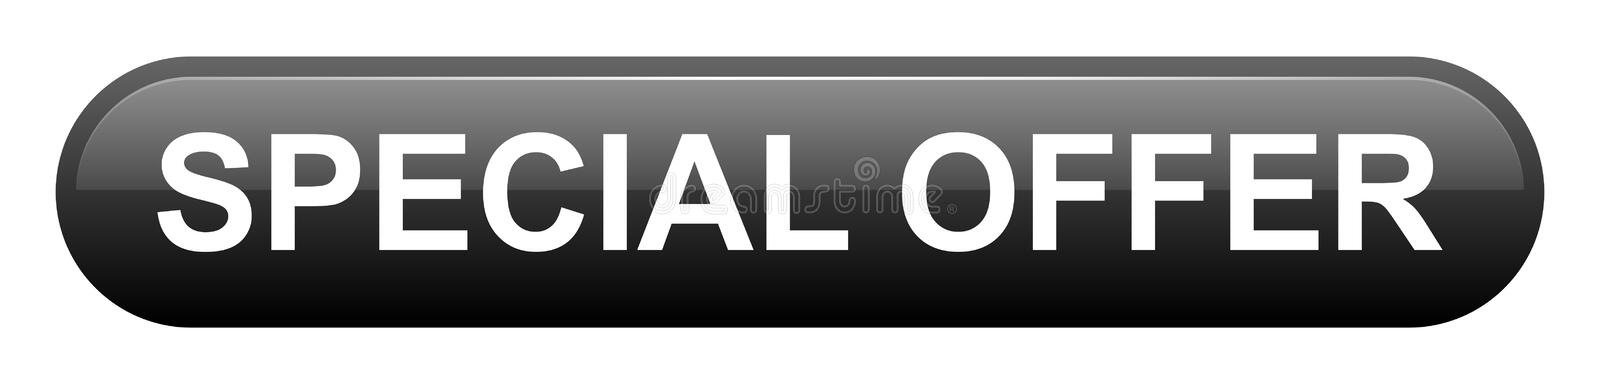 Special offer black rectangle with rounded corner button vector illustration